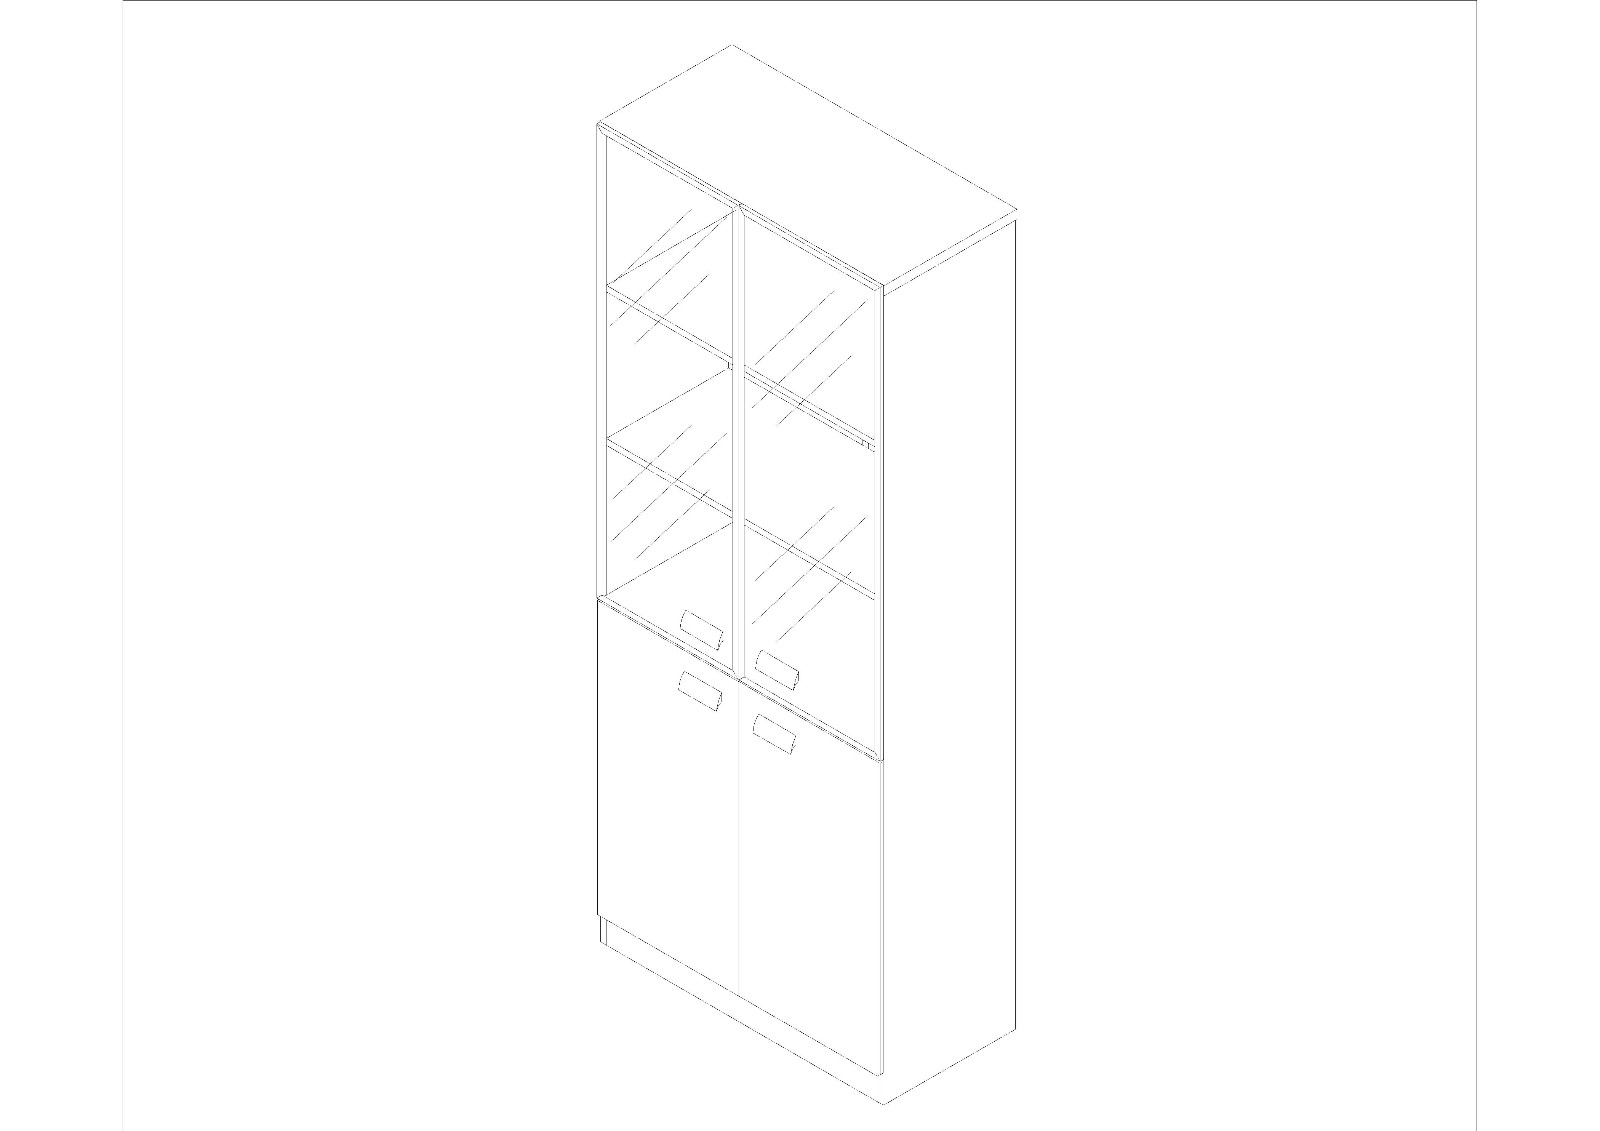 Fenghe-Office cabinets丨Fenghe丨Mdf Wooden Book Shelf Cabinet for office